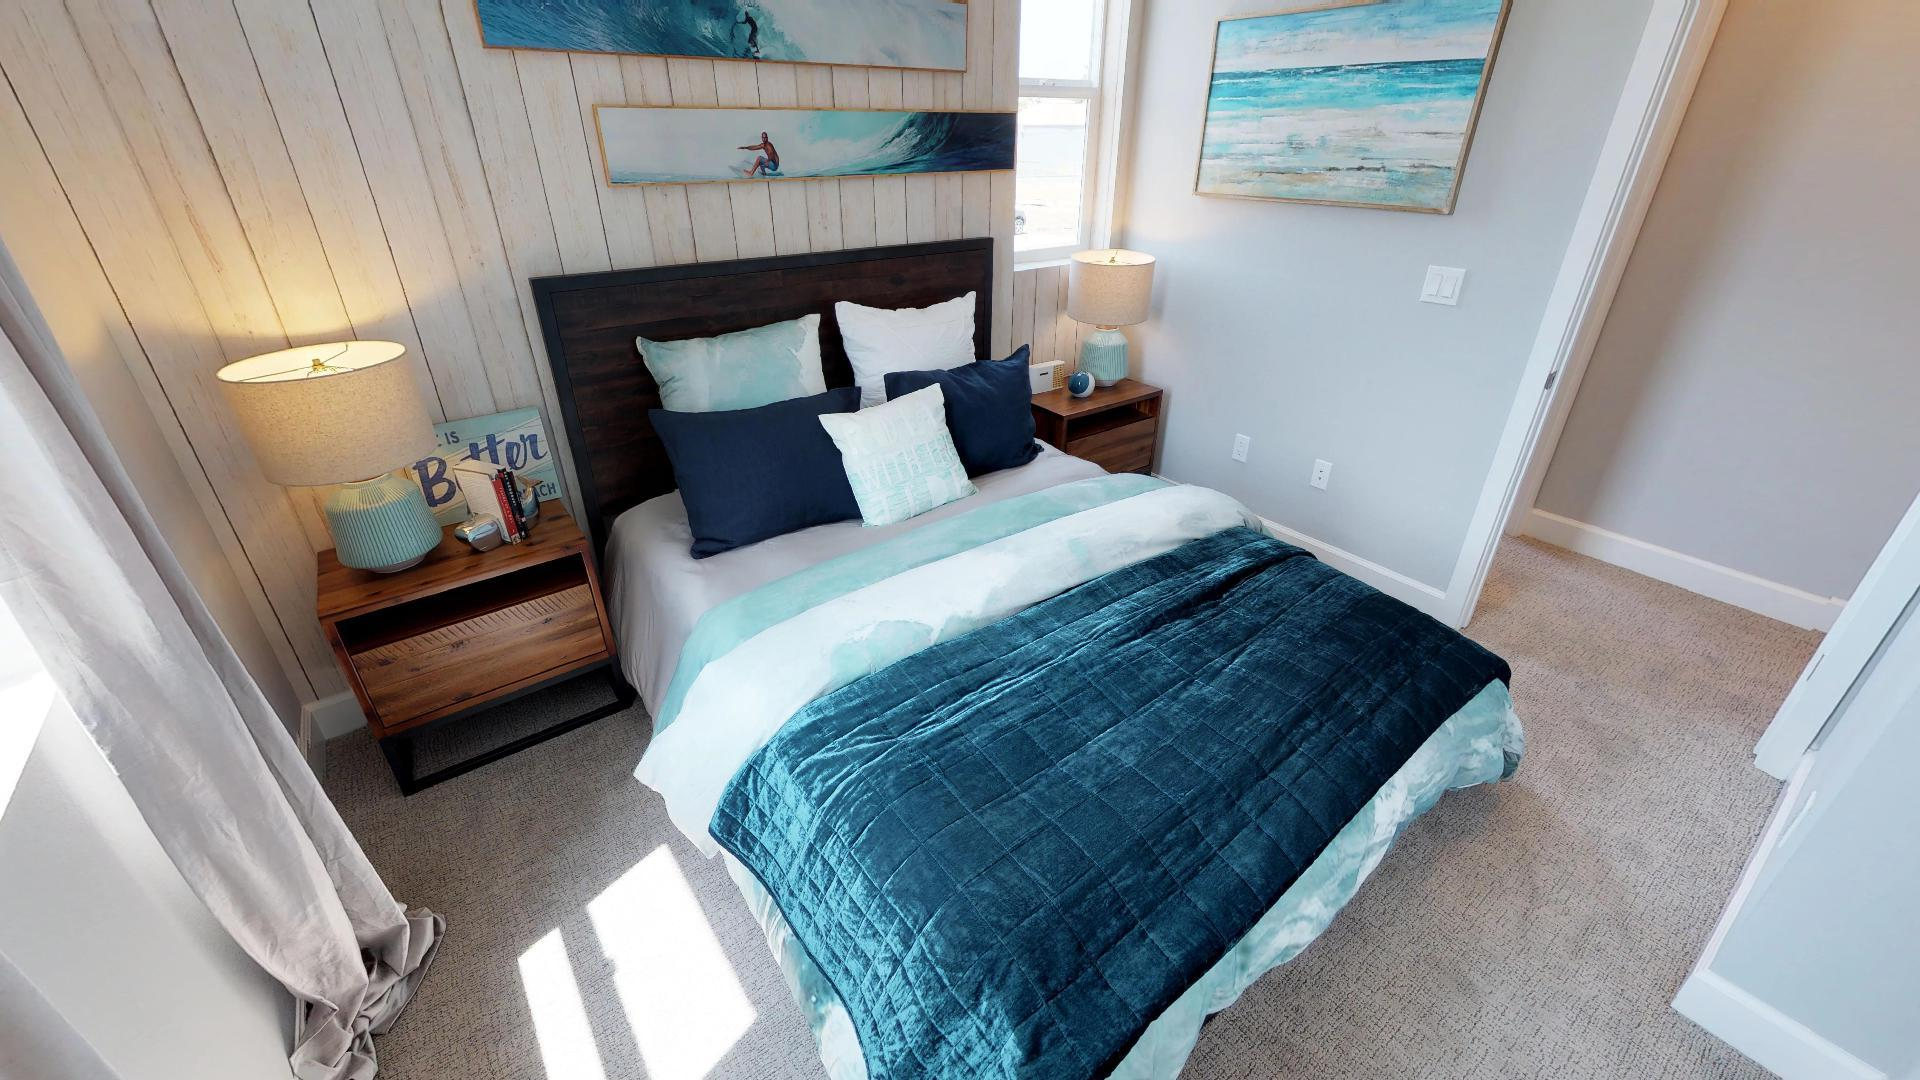 Bedroom featured in the Plan C By Blue Mountain Communities in Santa Rosa, CA